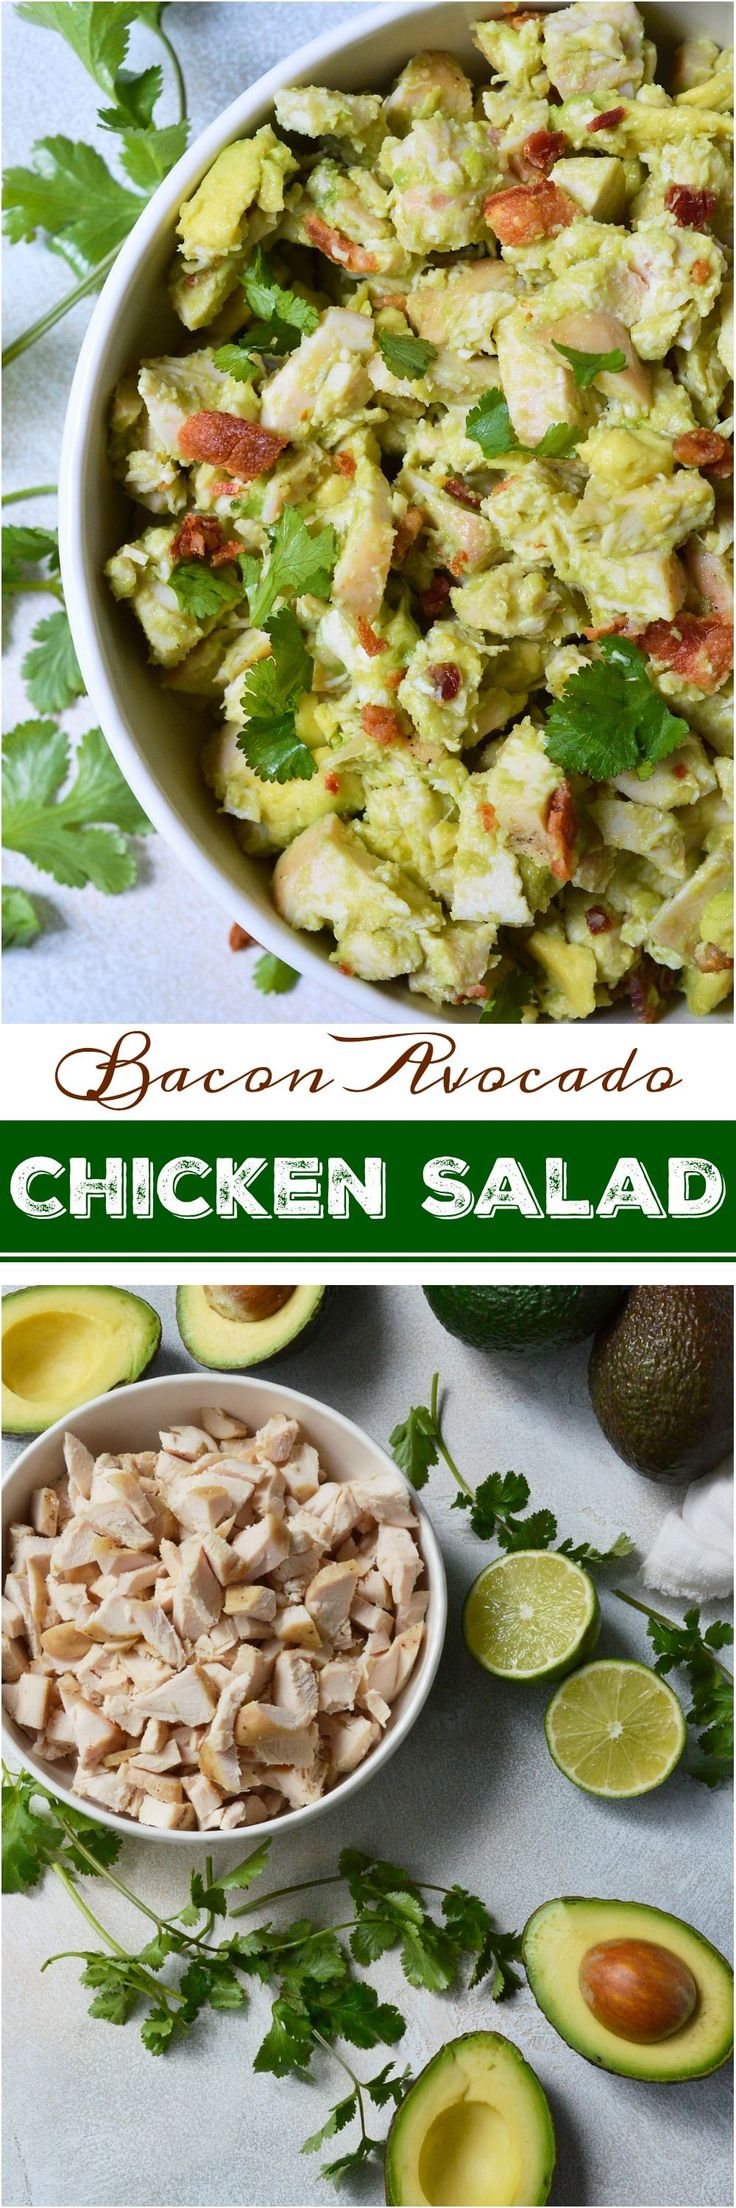 Wanting to eat healthy and nutritious without giving up your favorite foods? This Bacon Avocado Chicken Salad Recipe is full of flavor, healthy fats, no-mayo and is Whole30 friendly. #ad